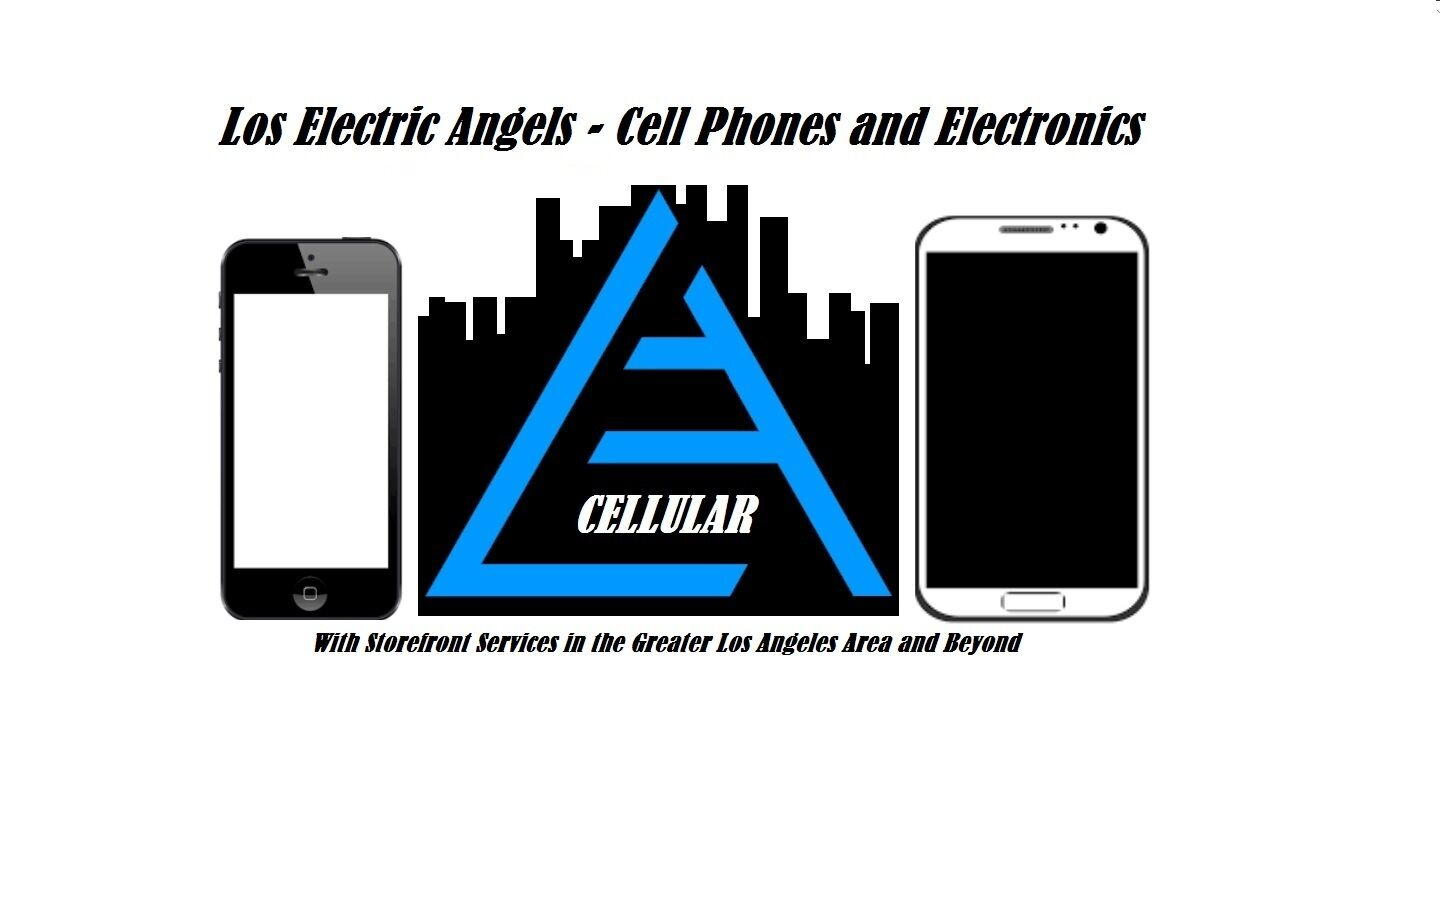 Electric Angels Cellular & Services